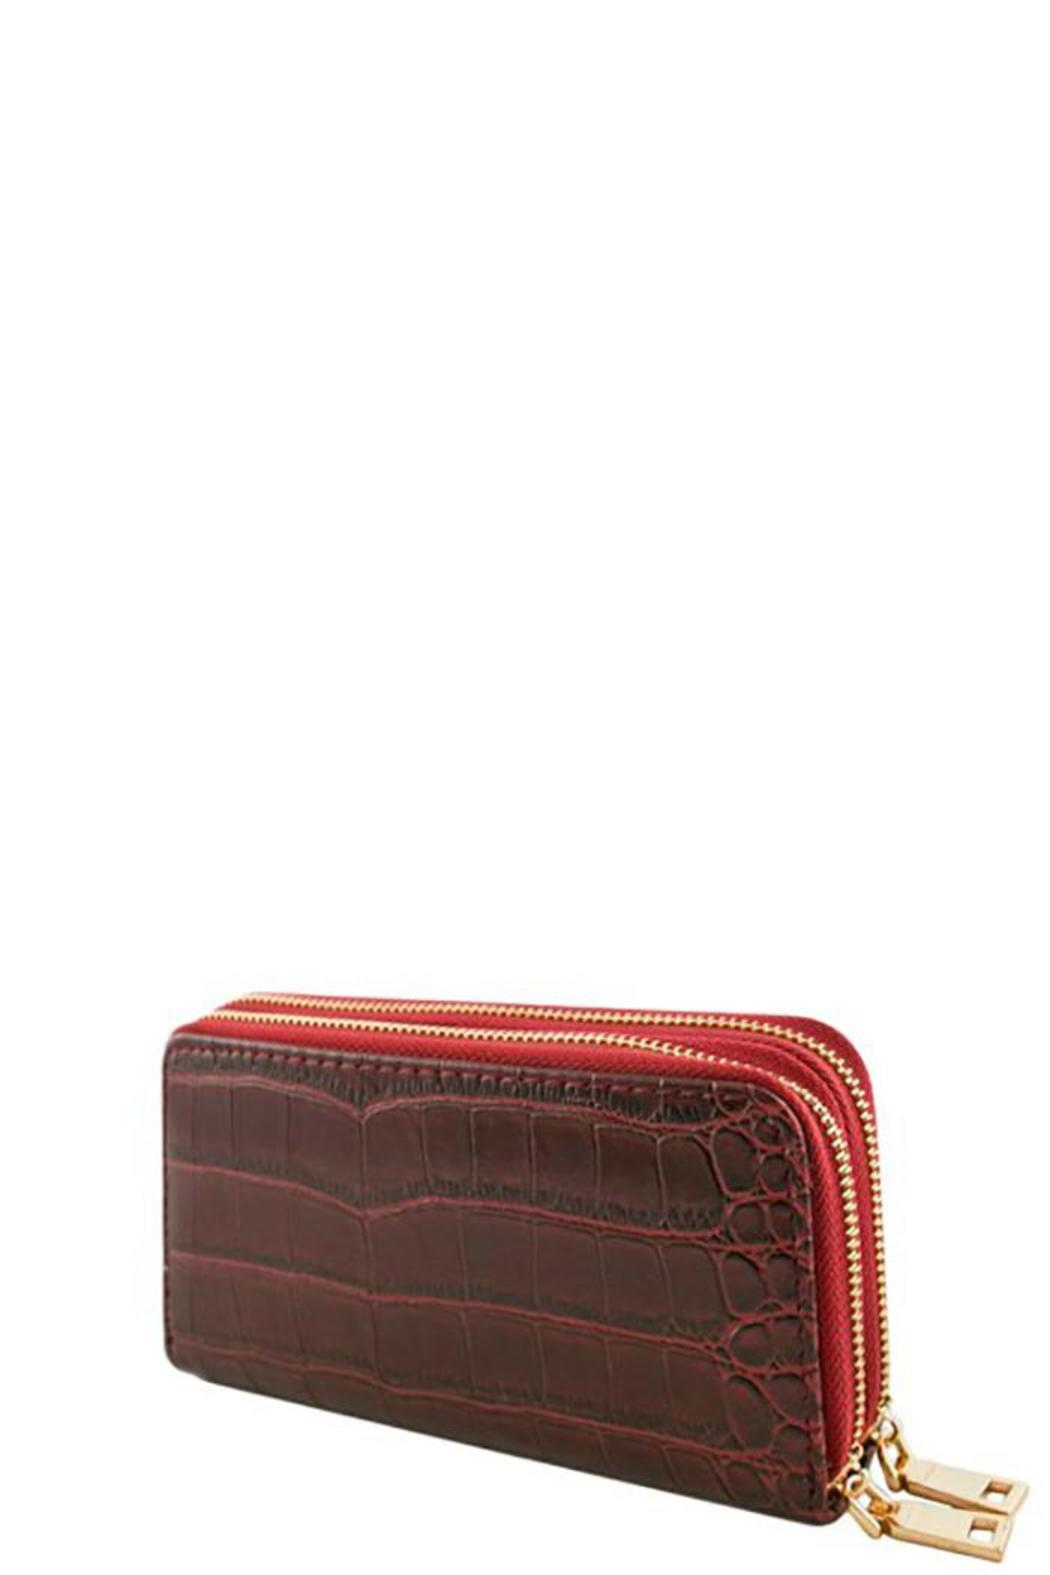 Nadya's Closet Croc Accent Wallet - Main Image